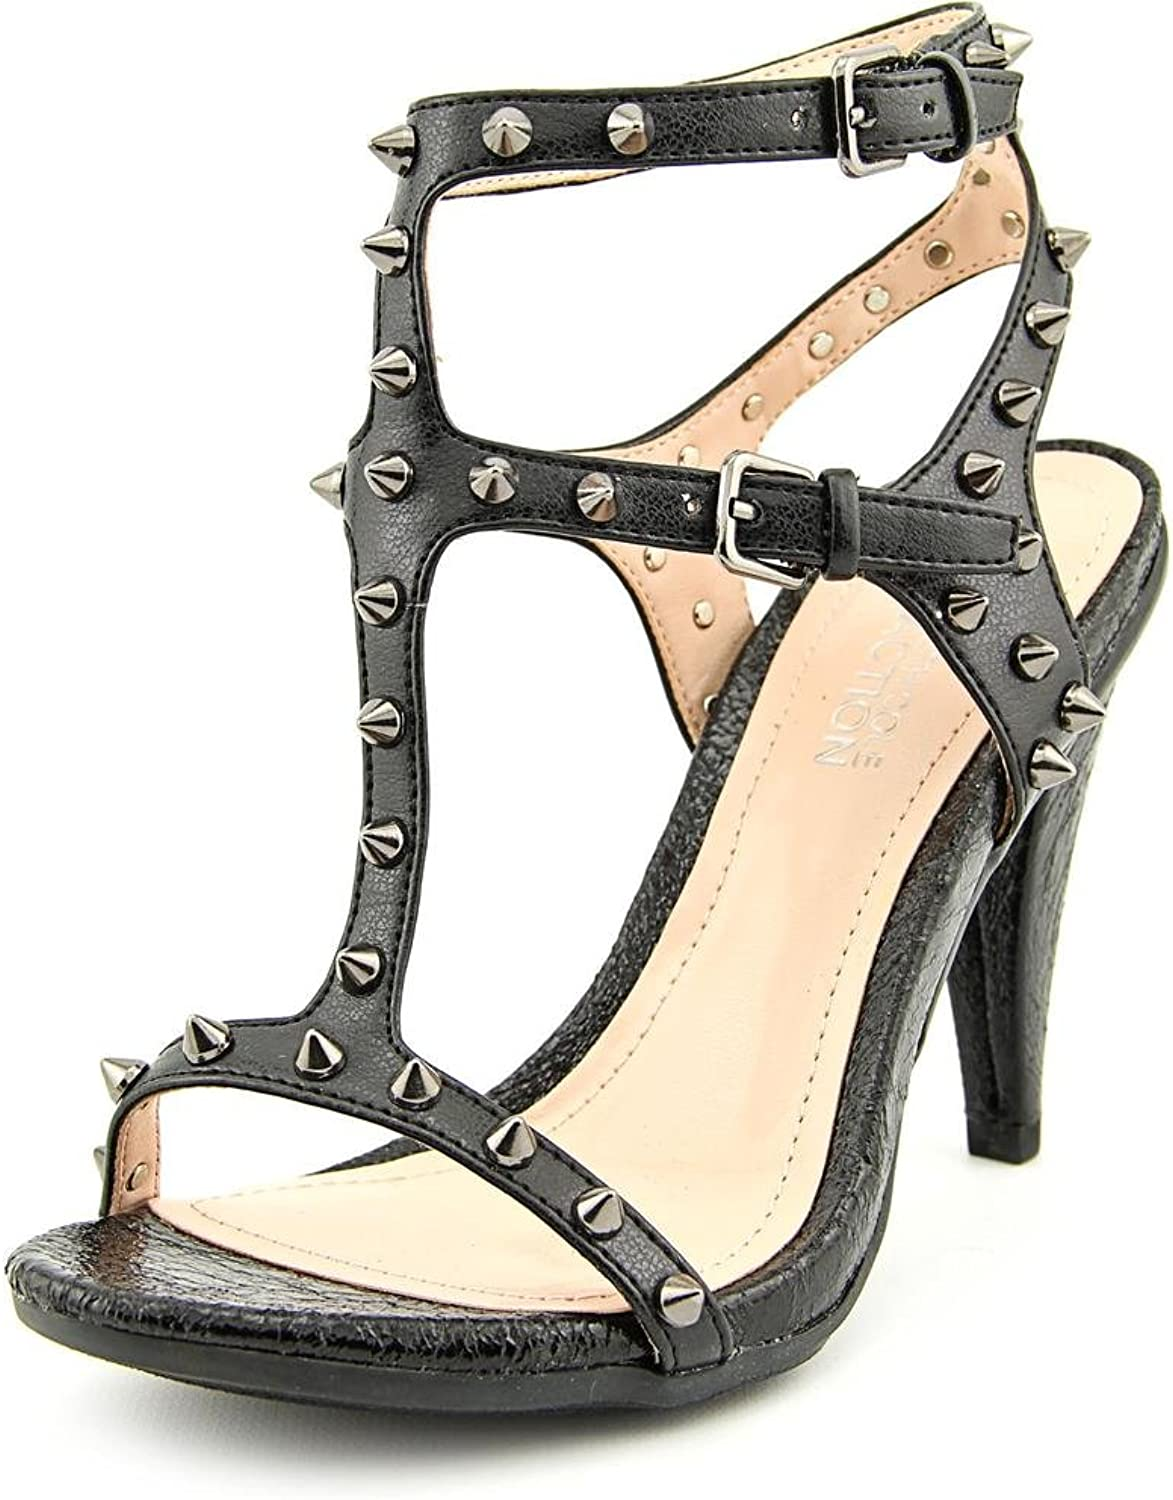 Kenneth Cole Reaction Know Stud Womens 6 Black Dress Sandals shoes